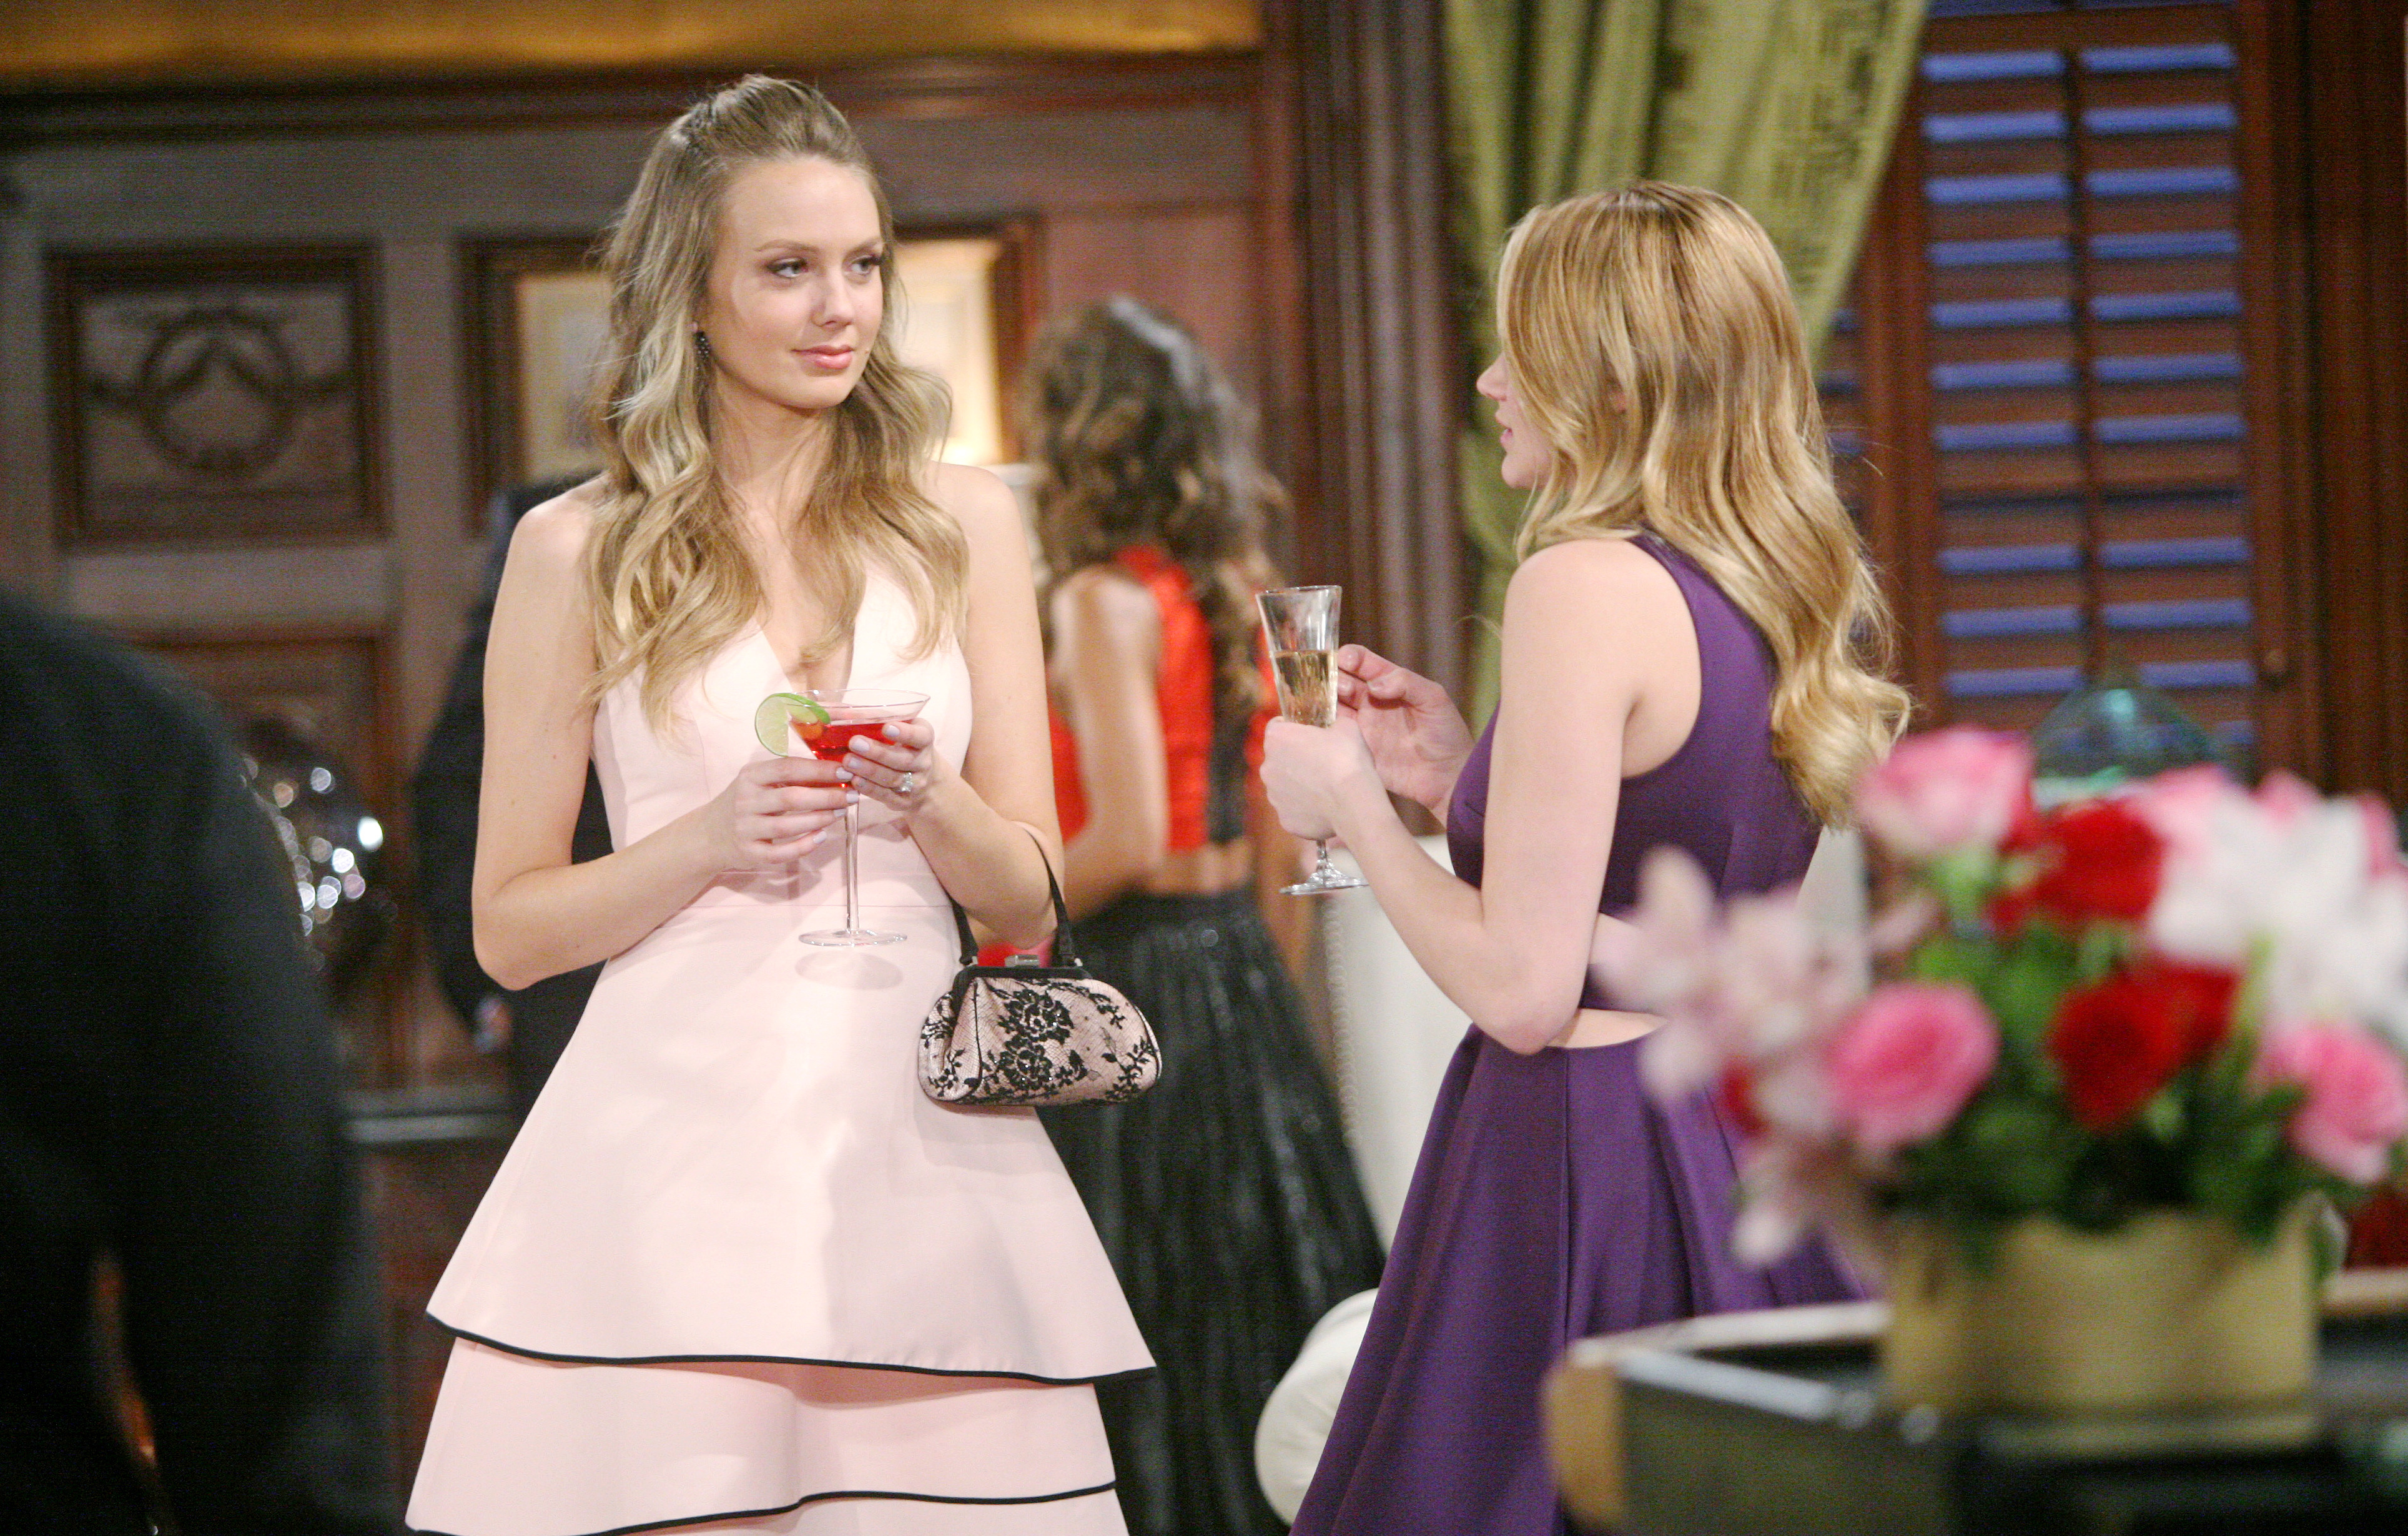 Abby proves that not all cocktail dresses are created equal.